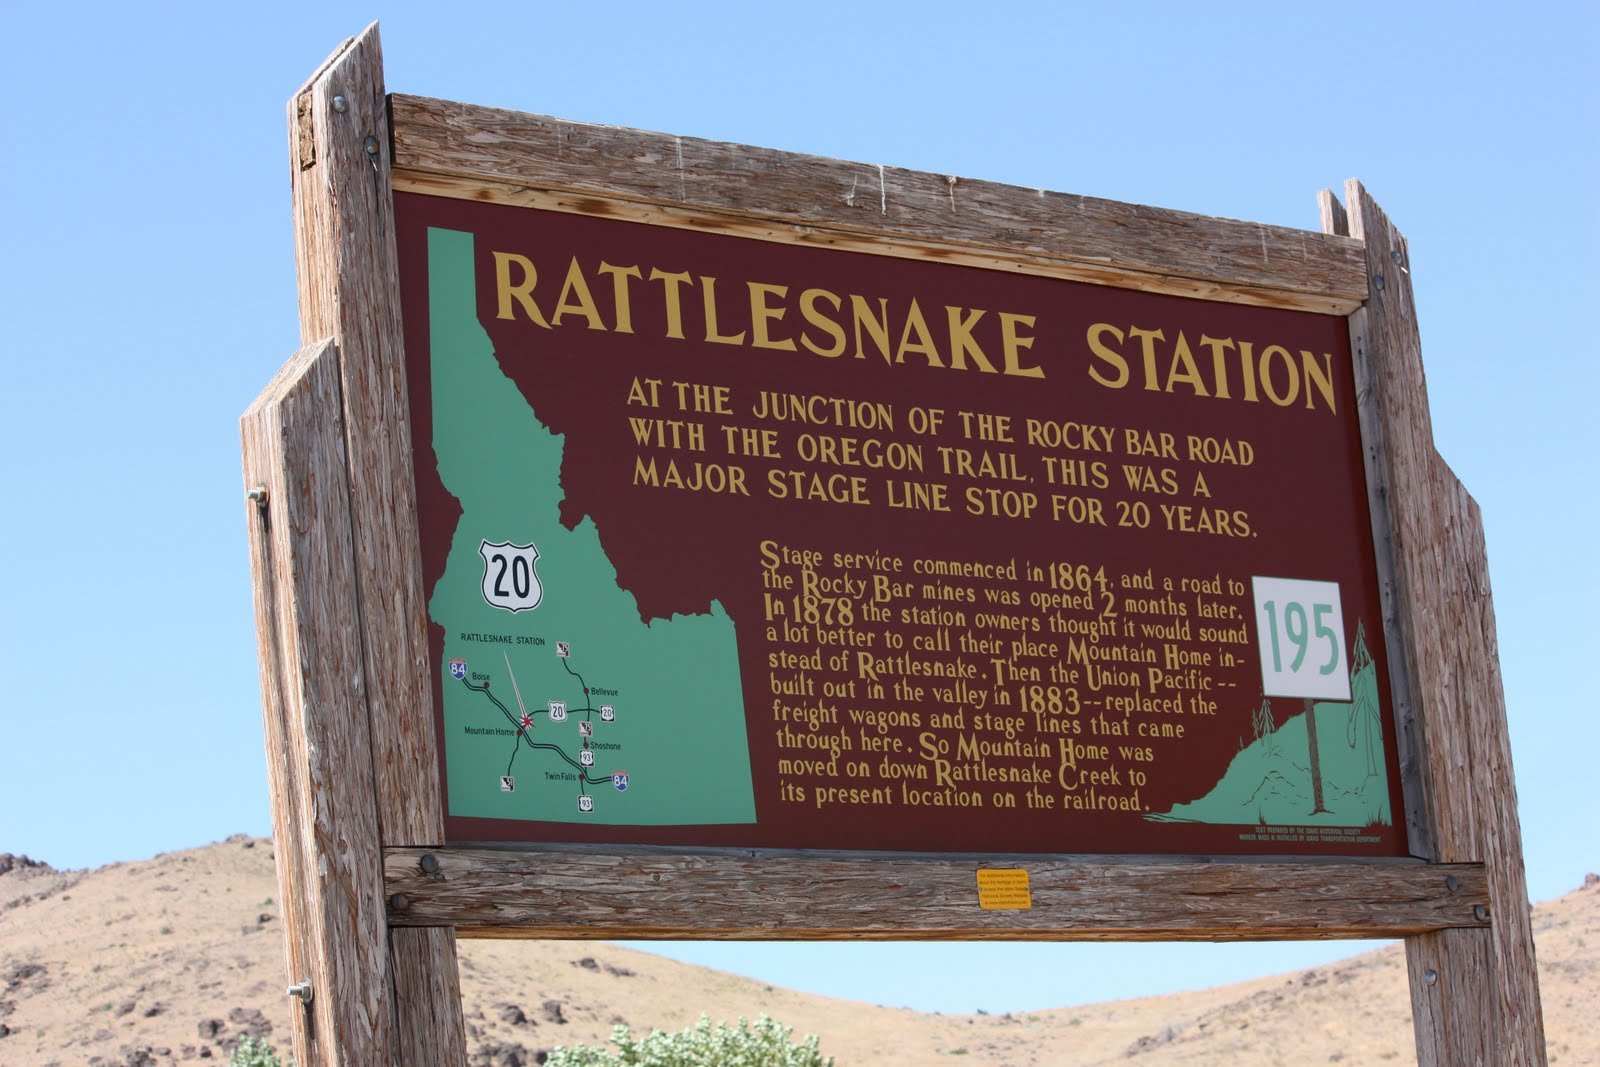 Boise Daily Photo: Rattlesnake Station, Now Known as Mountain Home